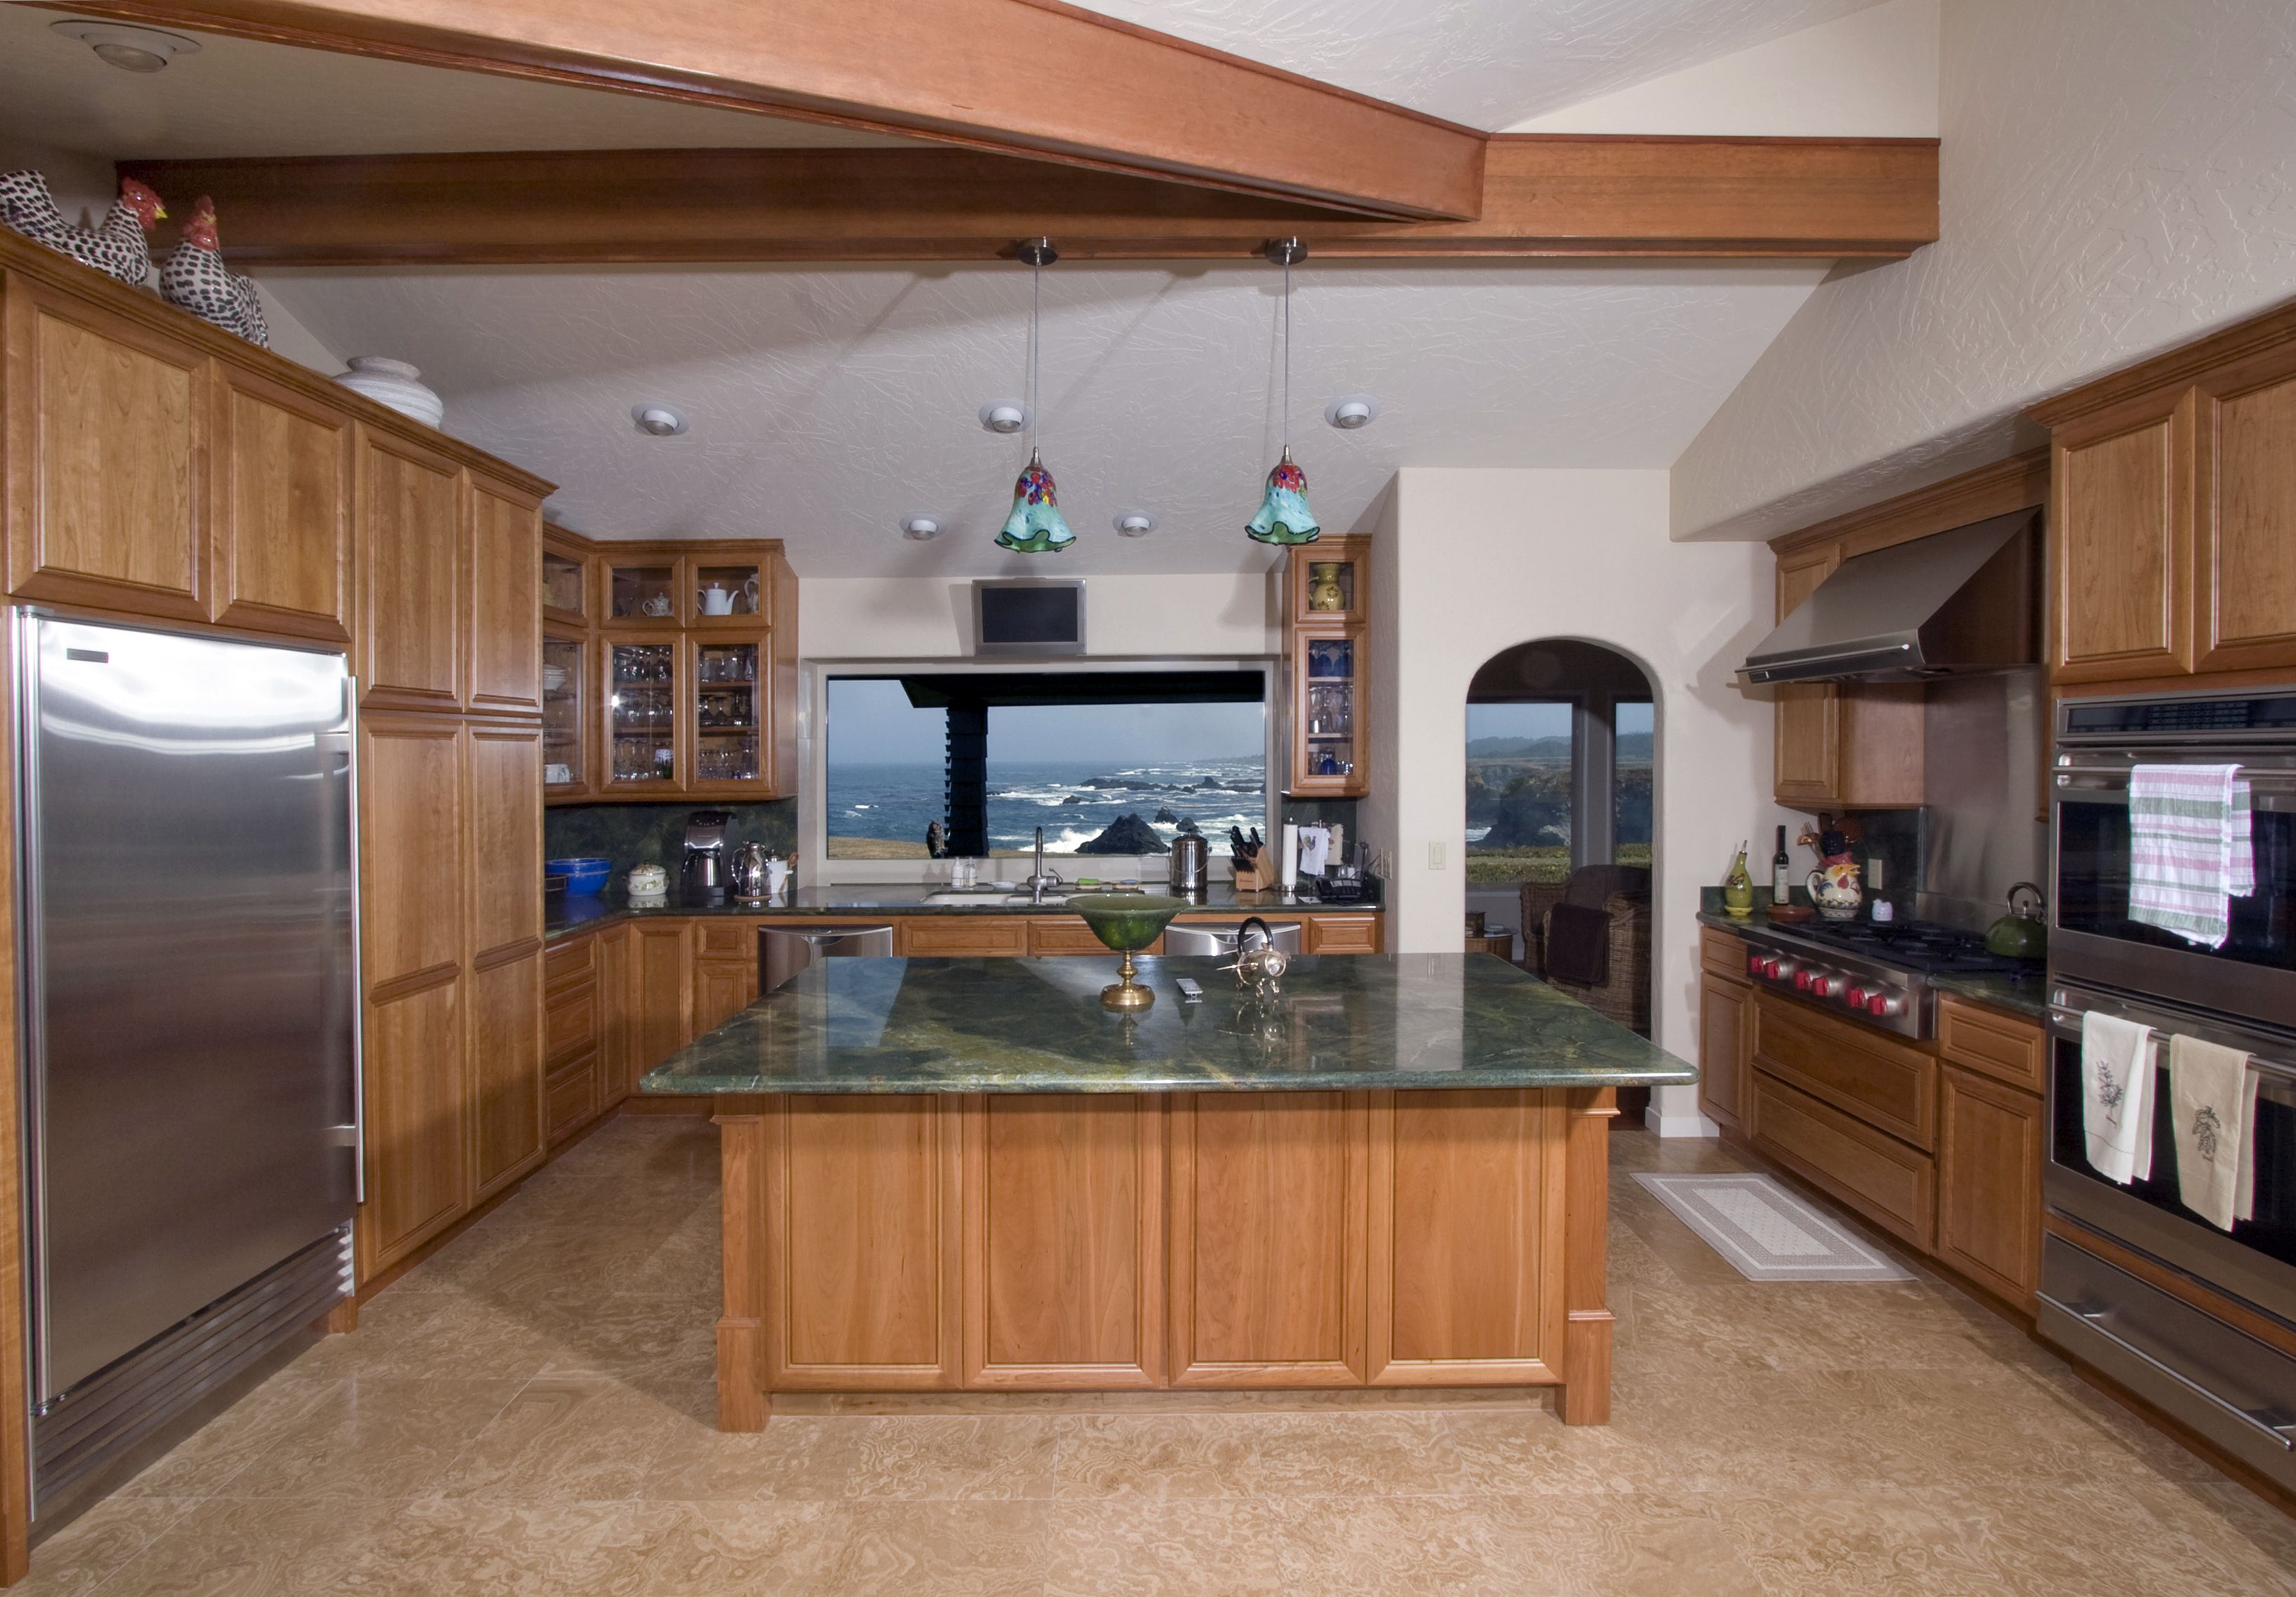 Gourmet Kitchen Has Professional Grade Stainless Steel Liances And Granite Counters Open Concept